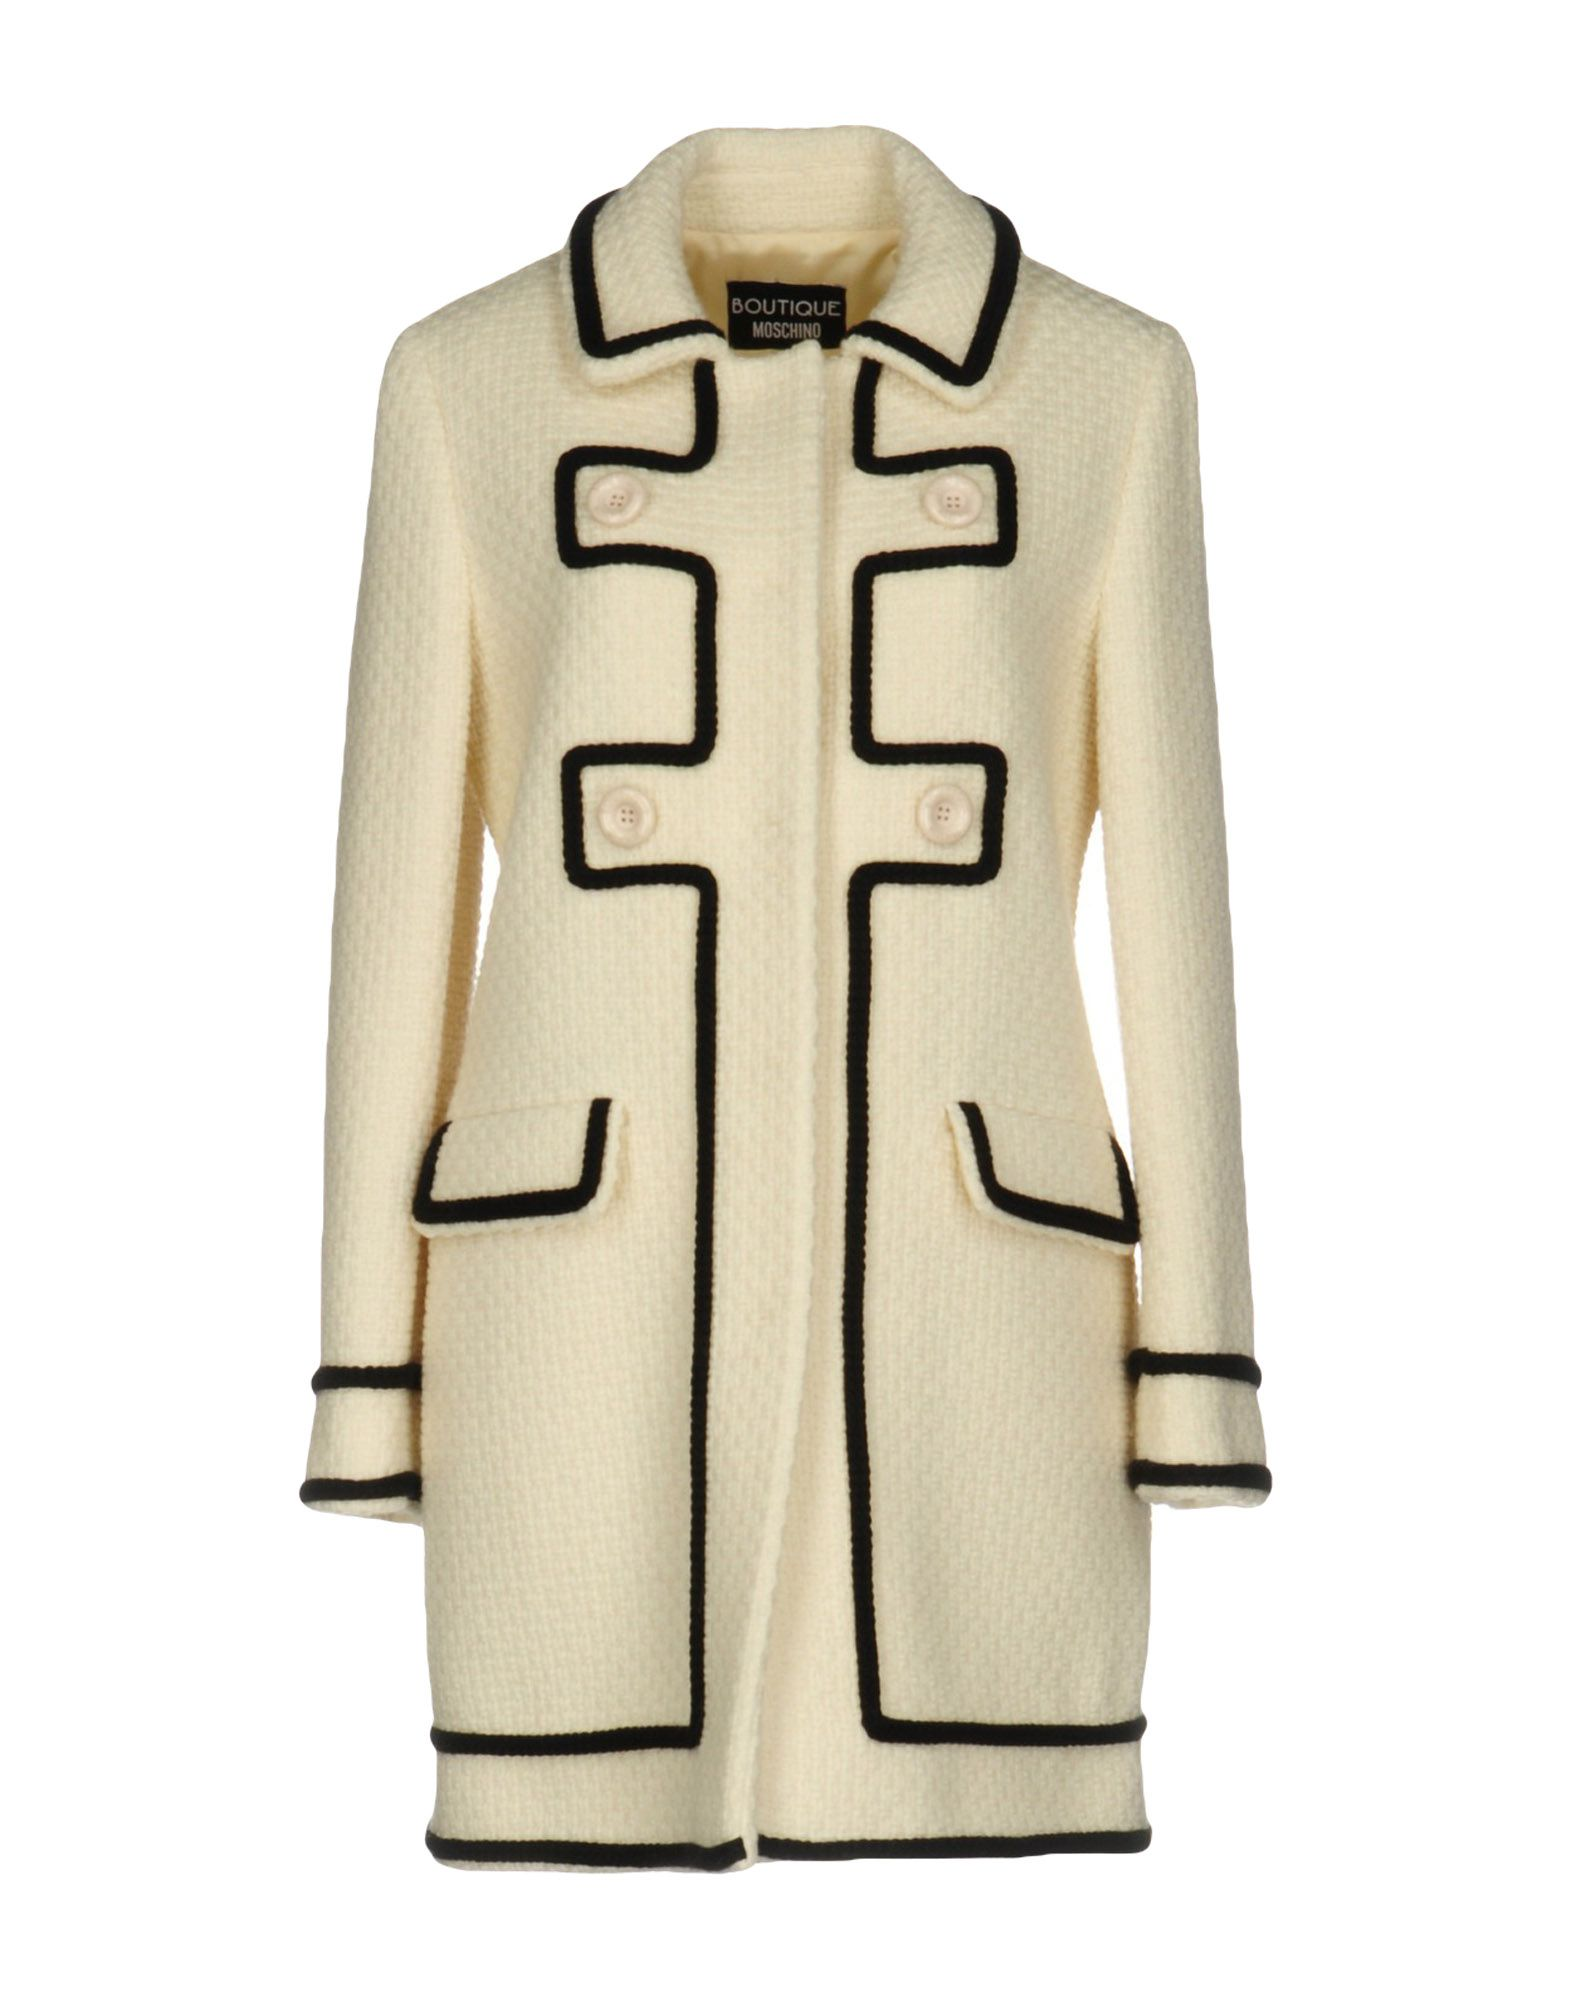 Cappotto Boutique Moschino Donna - Acquista online su kJom635